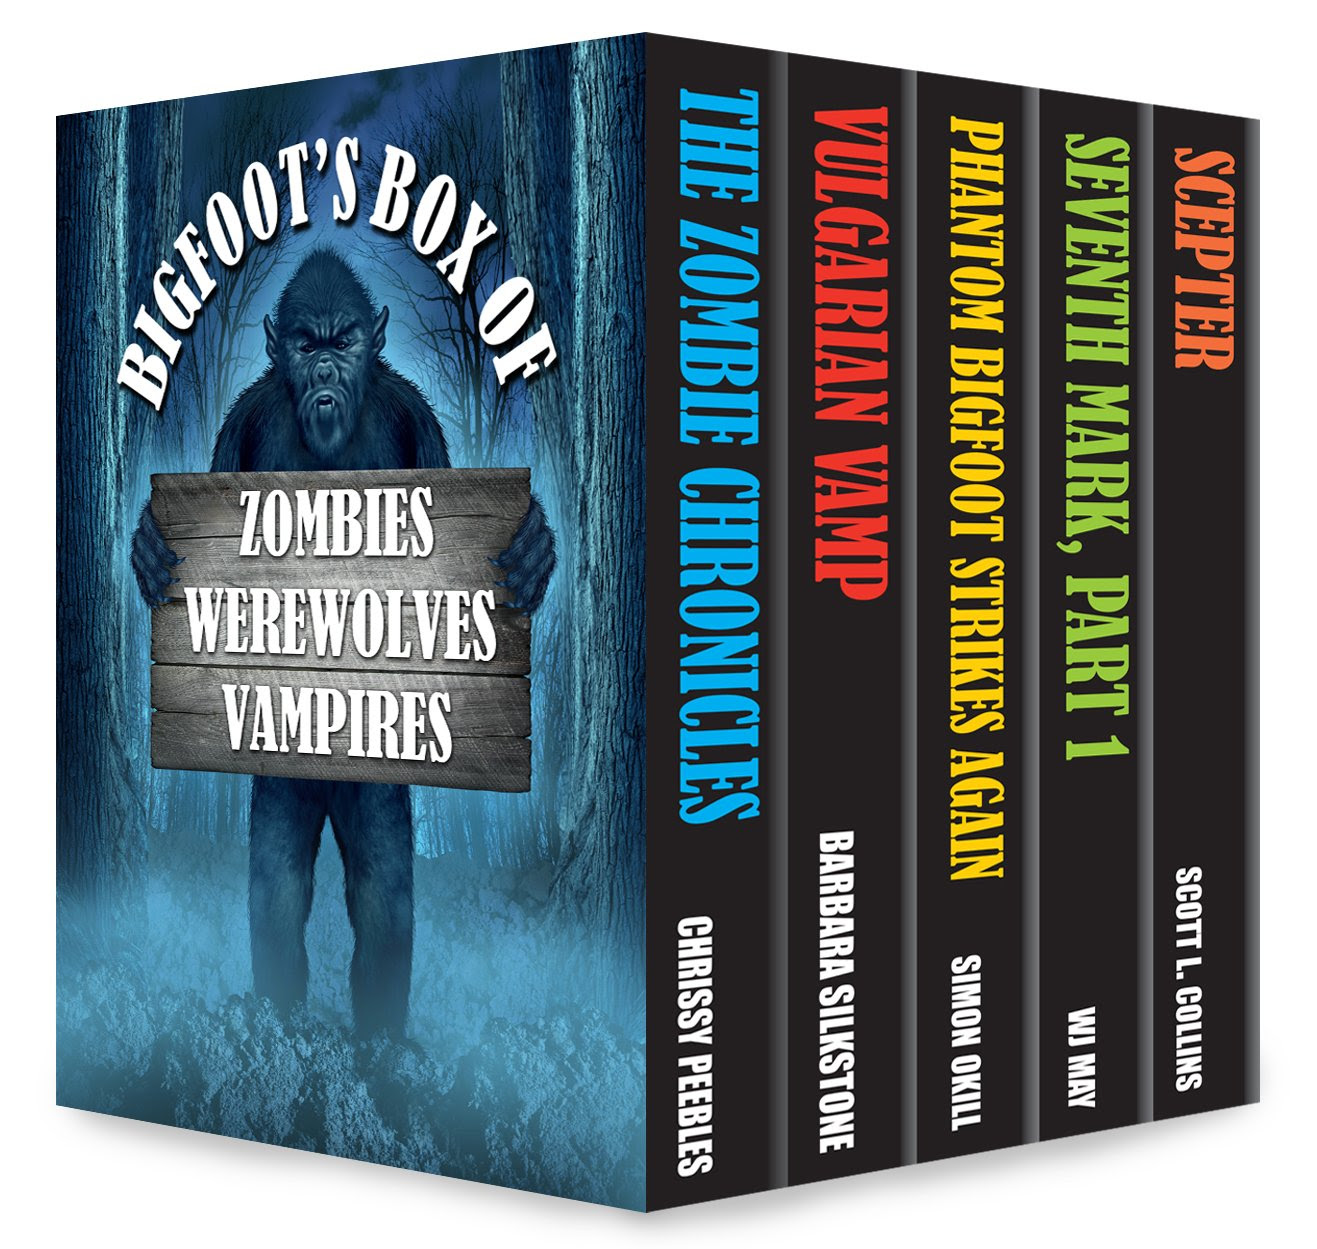 Bigfoot's box of zombies, werewolves and vampires